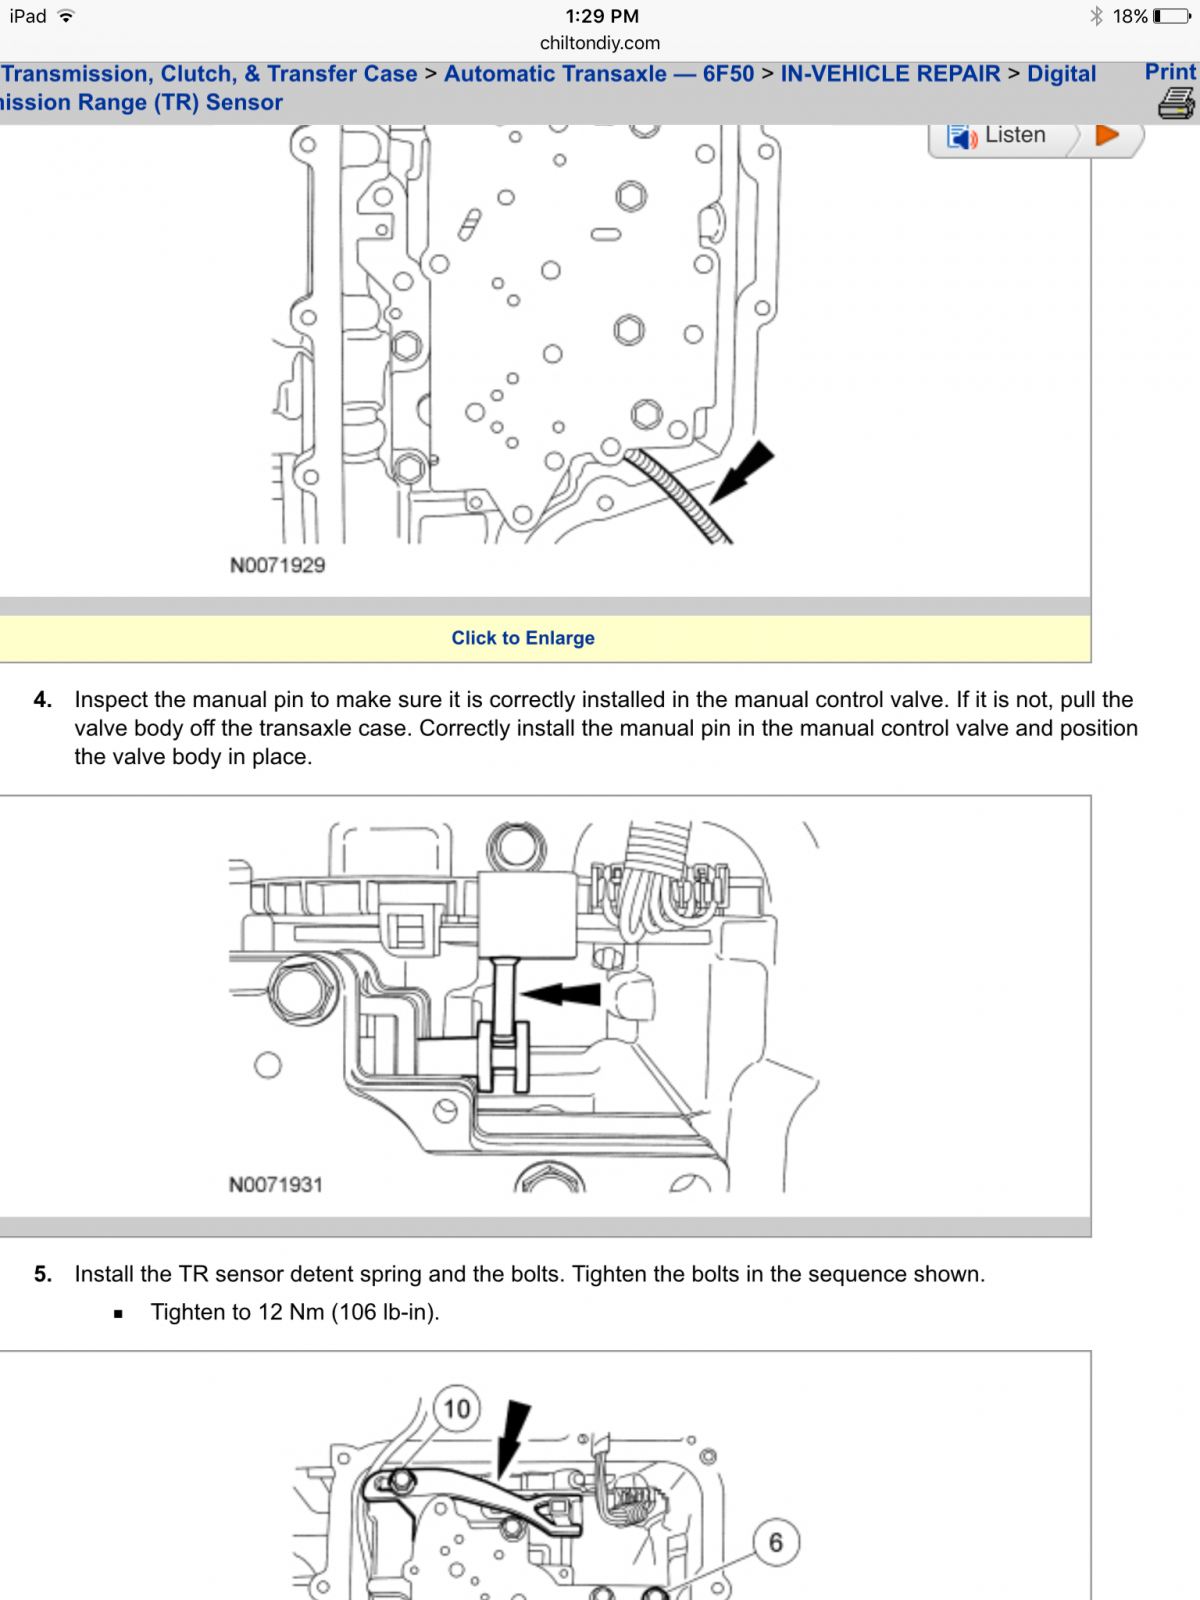 Edge Transmission Shifter Adjustment - 2008 Edge & MKX - Ford Edge ForumFord Edge Forum